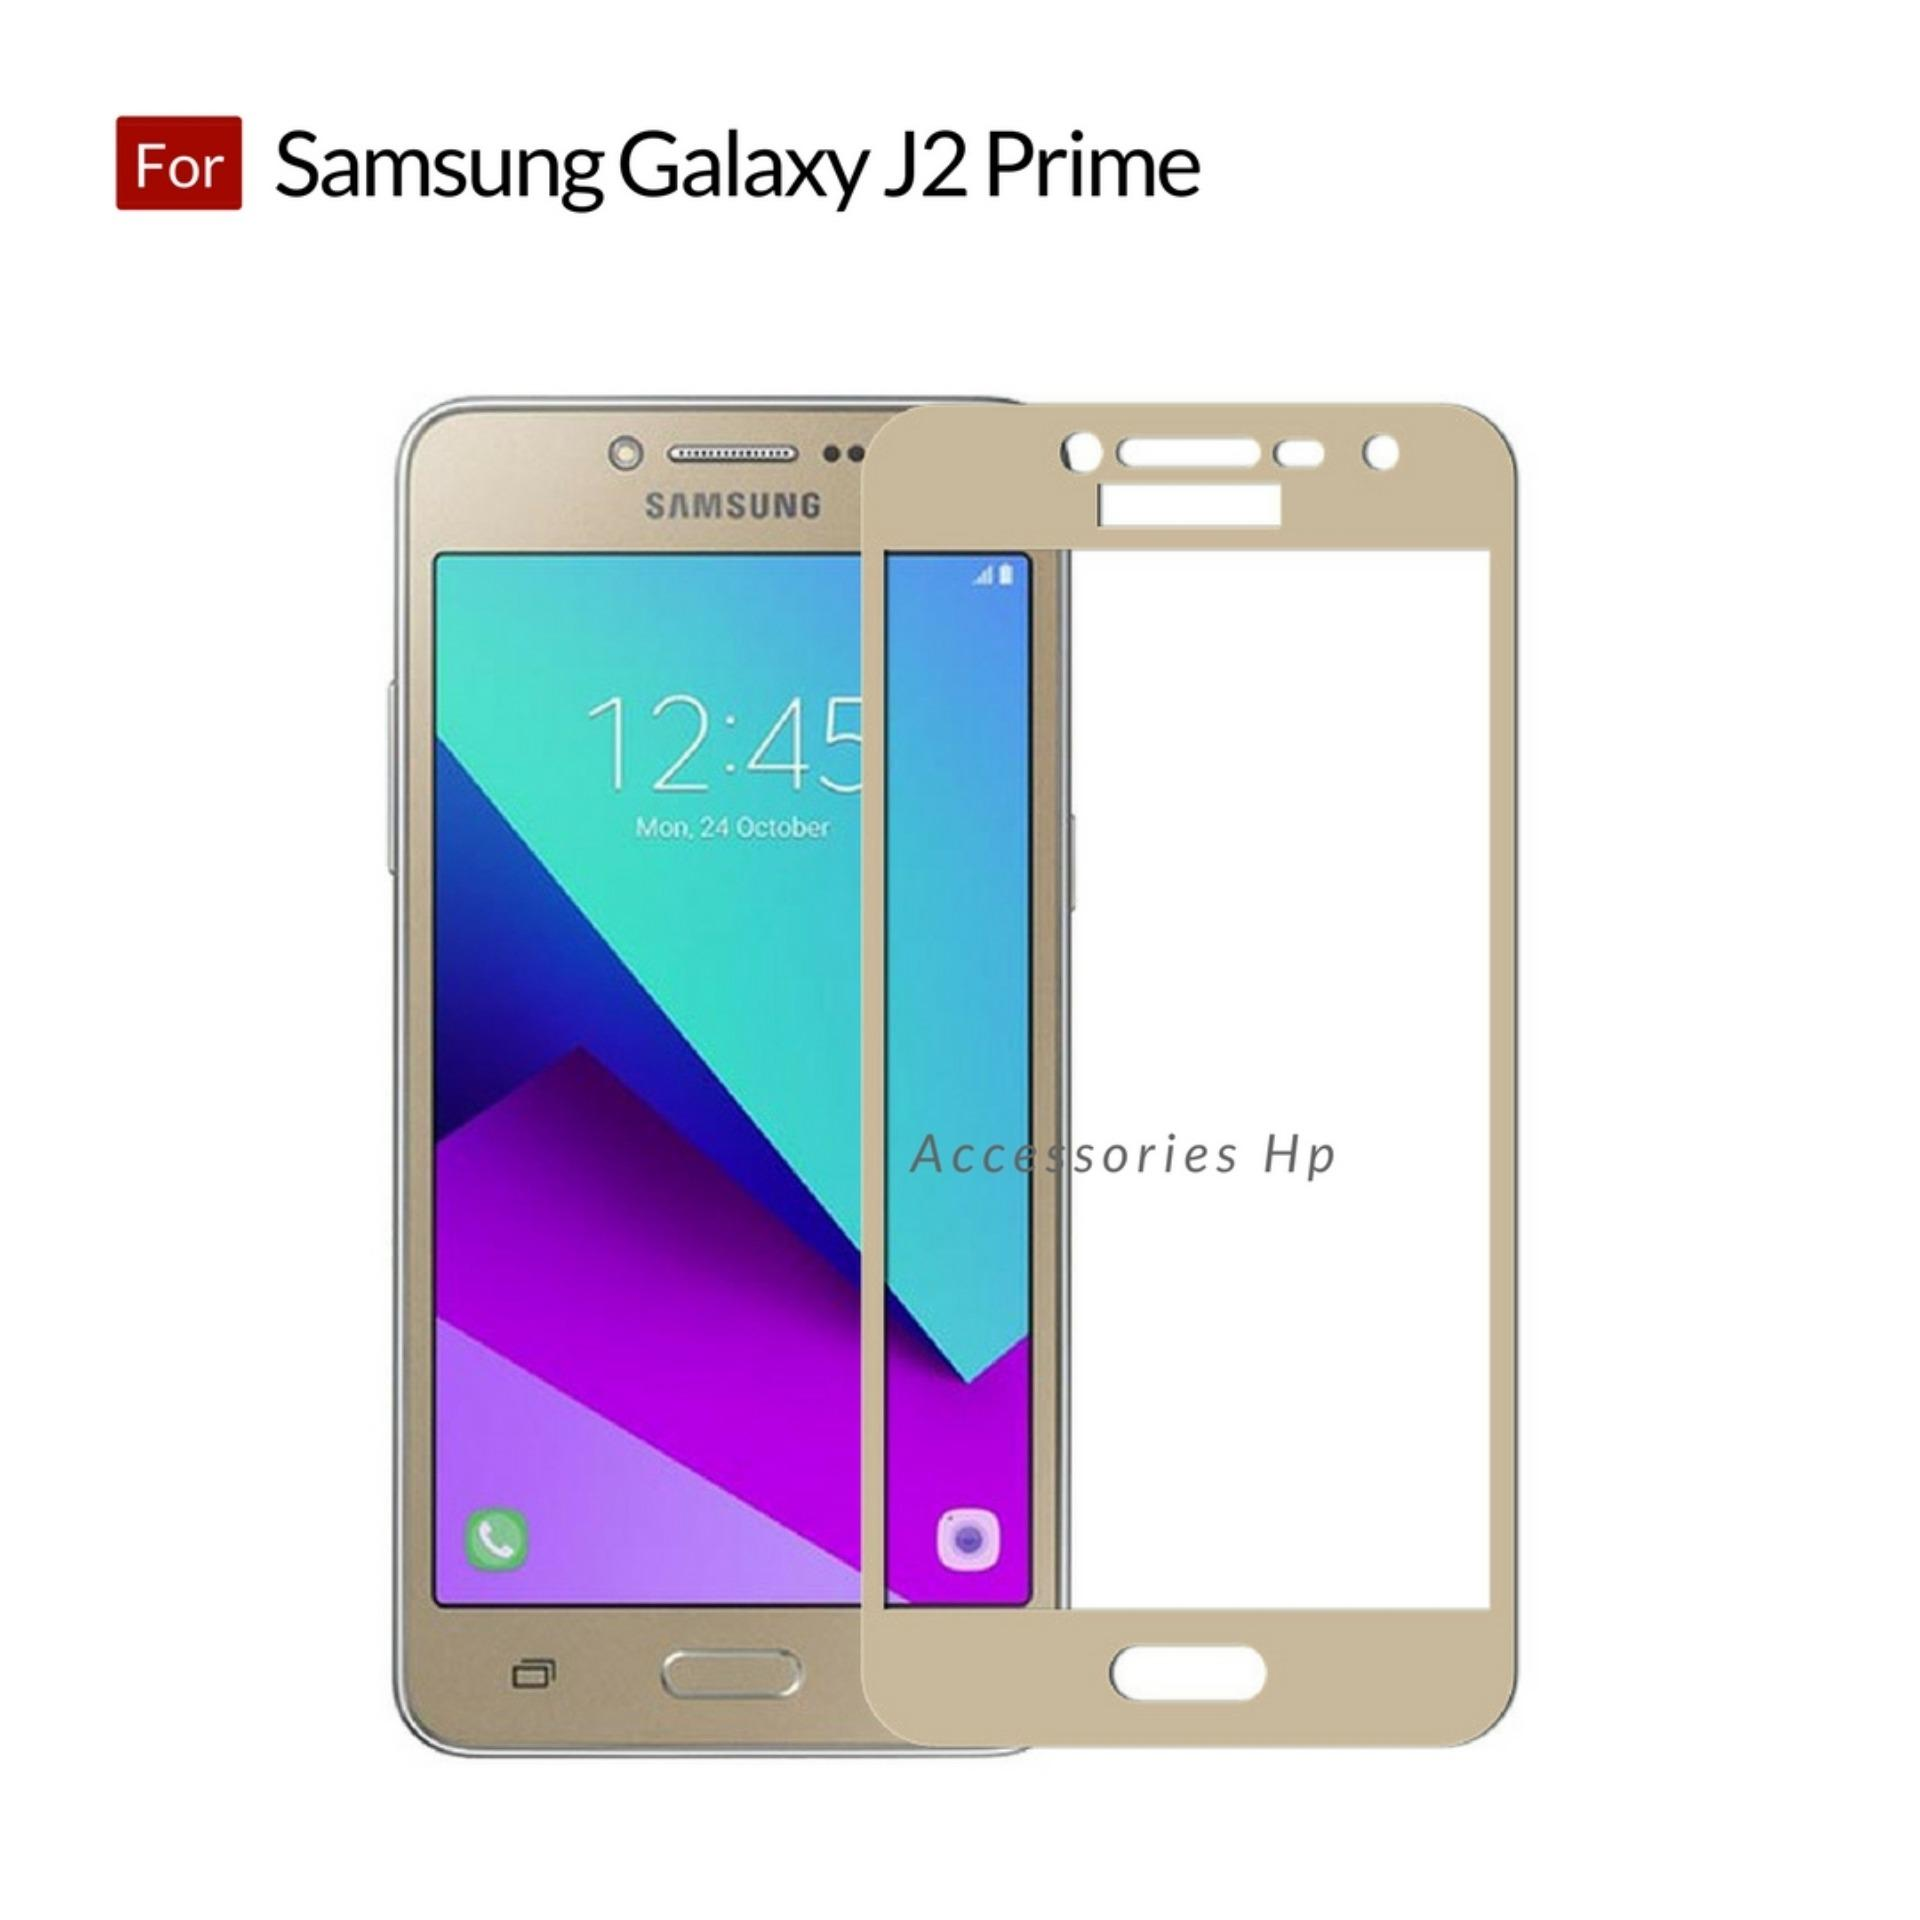 Qc Samsung Galaxy J5 J500 Tempered Glass Screen Protector Anti Gores Indoscreen Mask Premium Fc Asus Zenfone Go Zc500tg Clear Kaca J2 Prime Emas